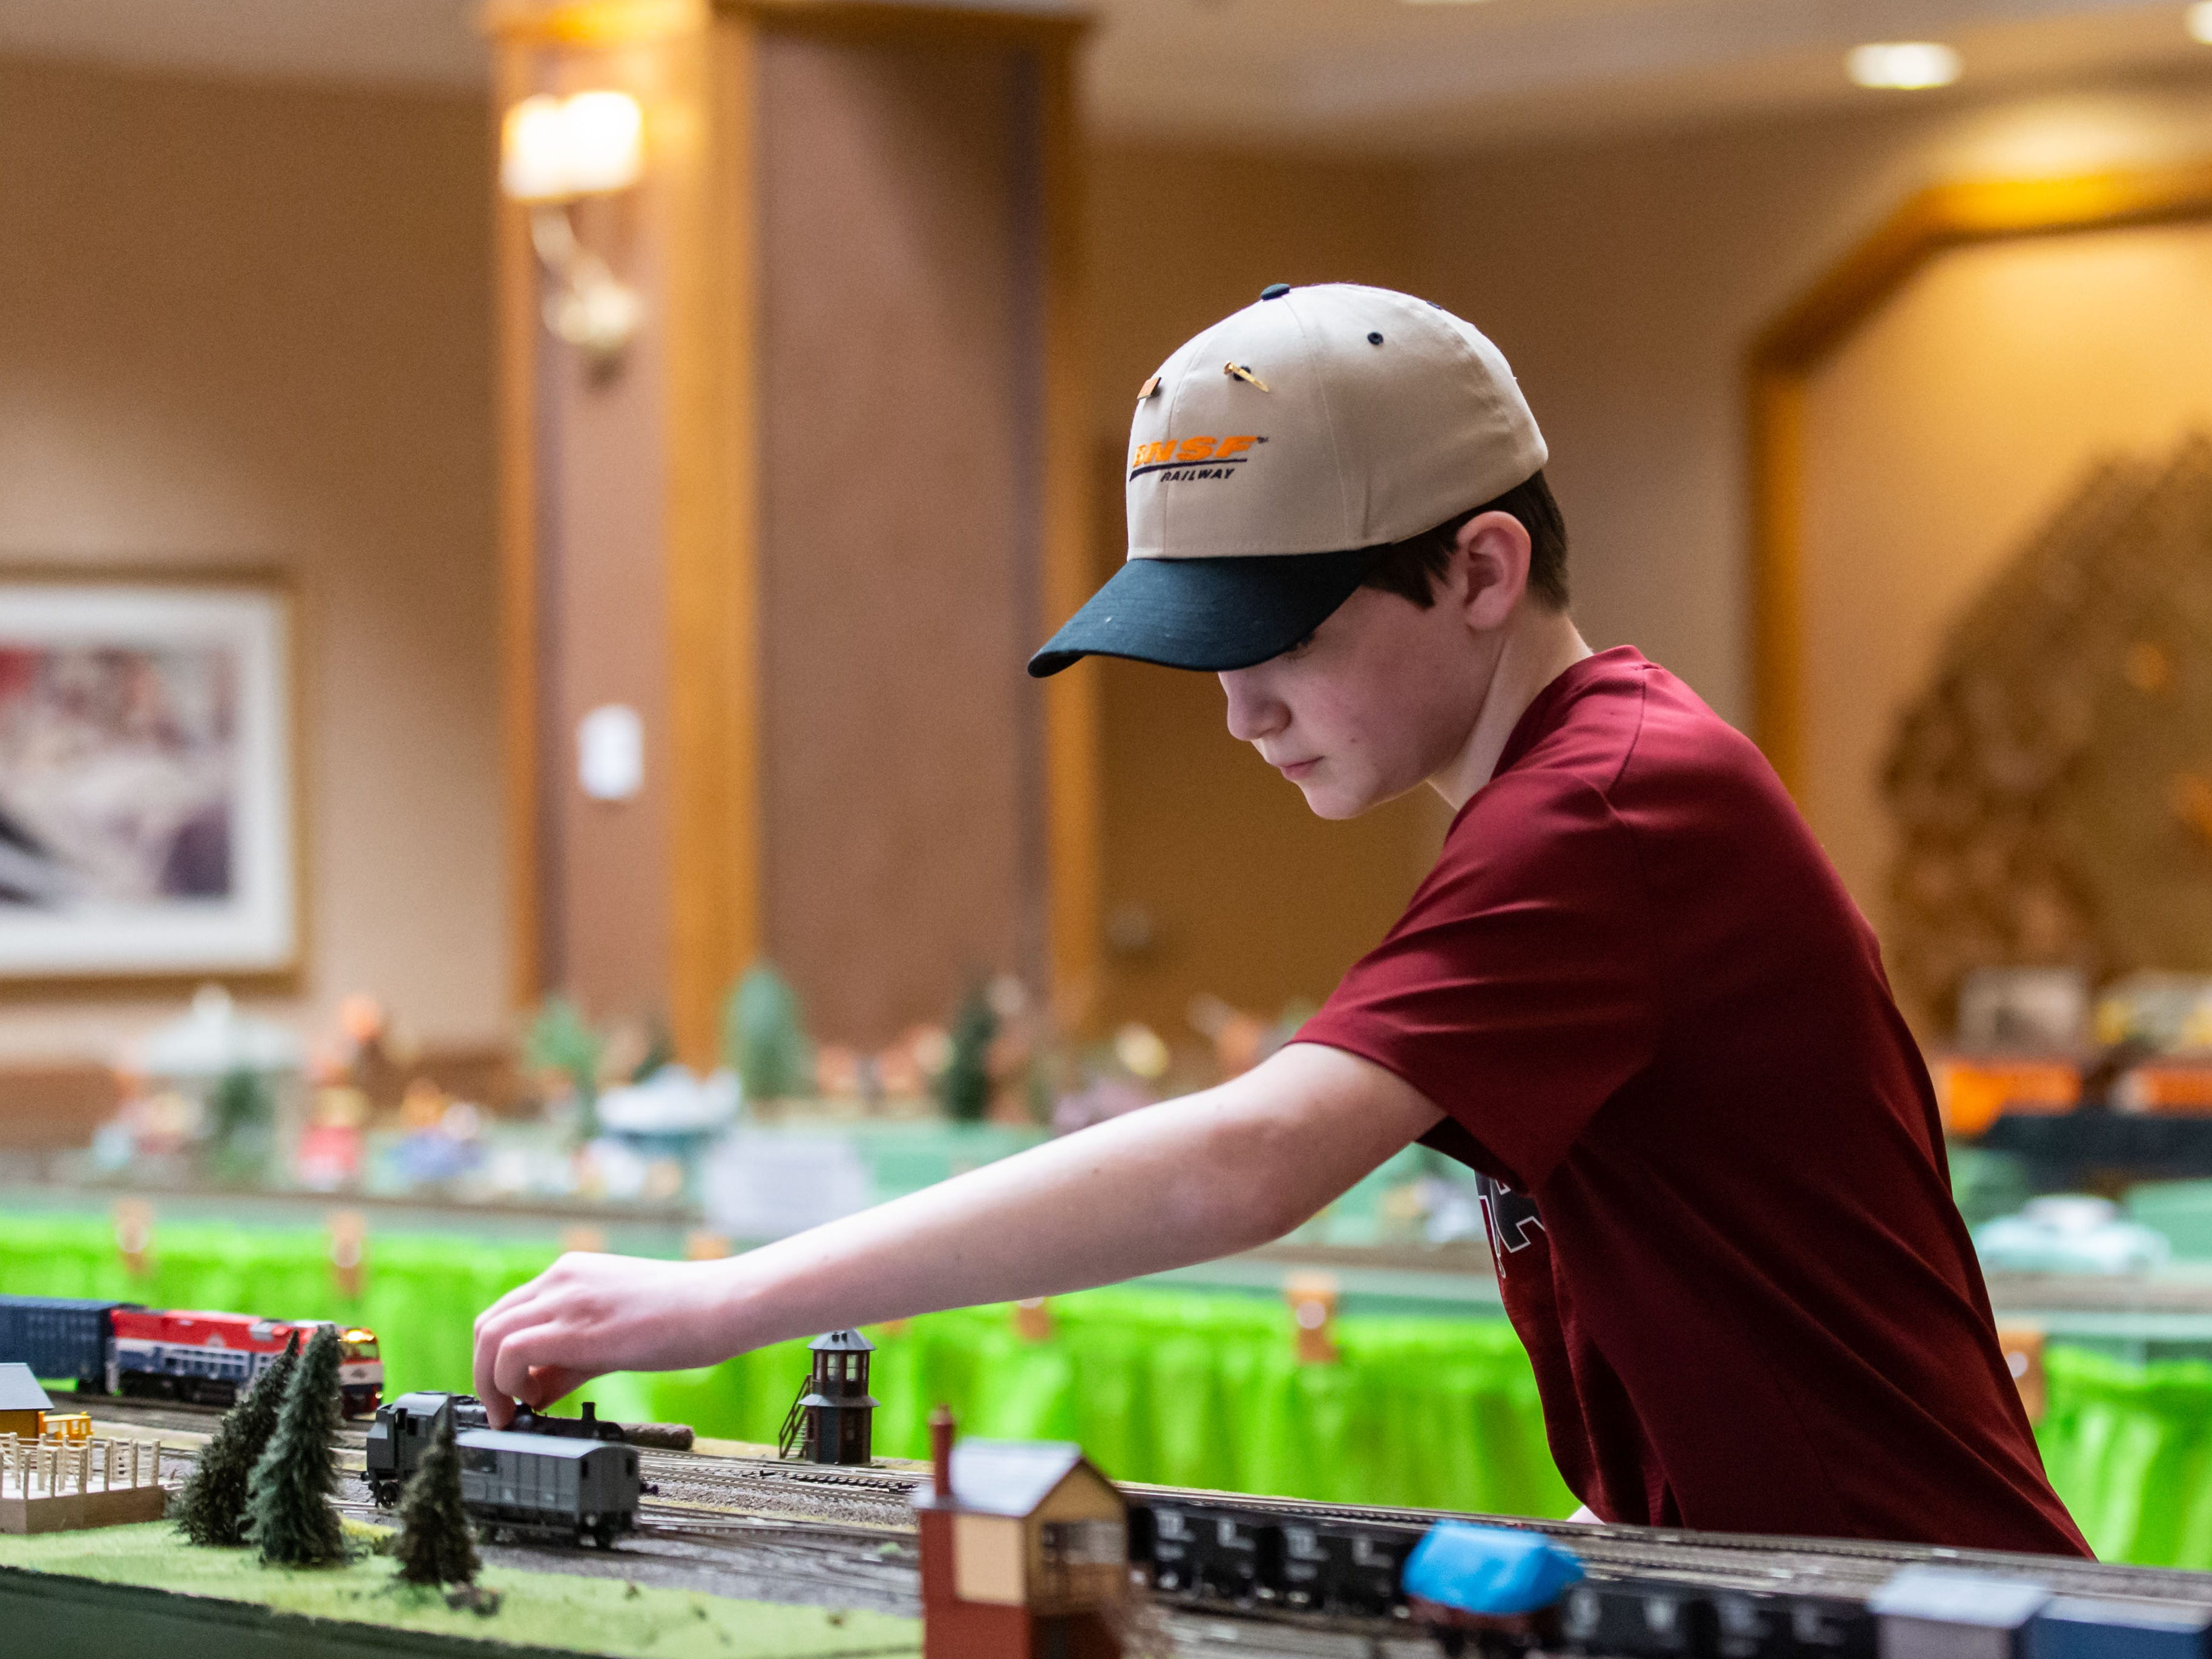 River Avram, 11, of Ixonia helps position a locomotive during the Trains, Tracks and Switches exhibit at Shorehaven Health and Rehabilitation Center in Oconomowoc on Thursday, March 28, 2019.